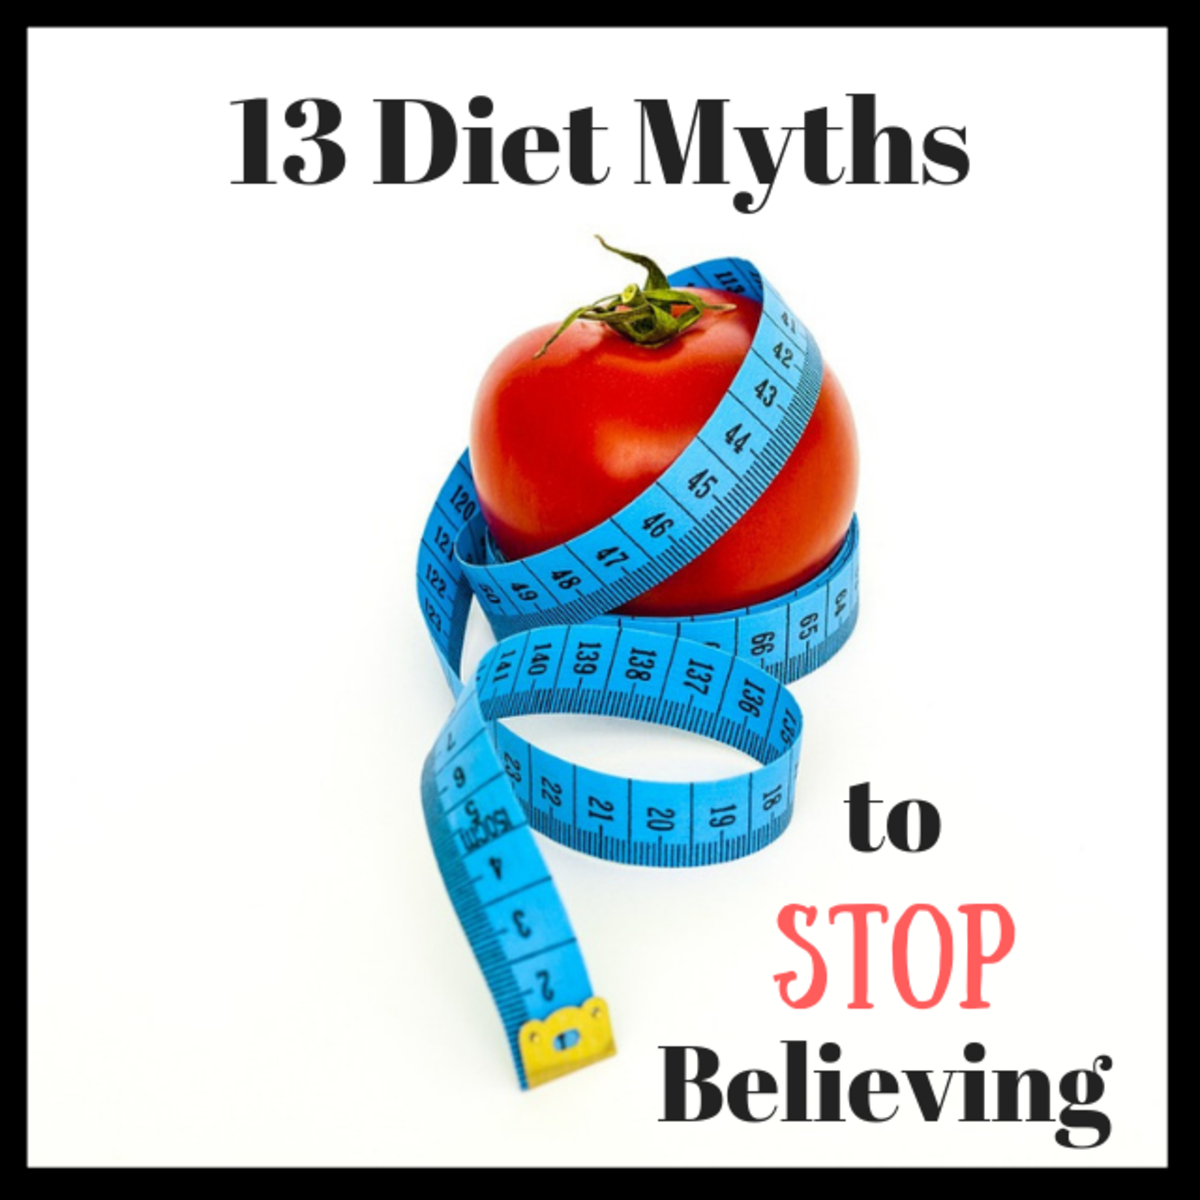 13 Diet Myths to Stop Believing